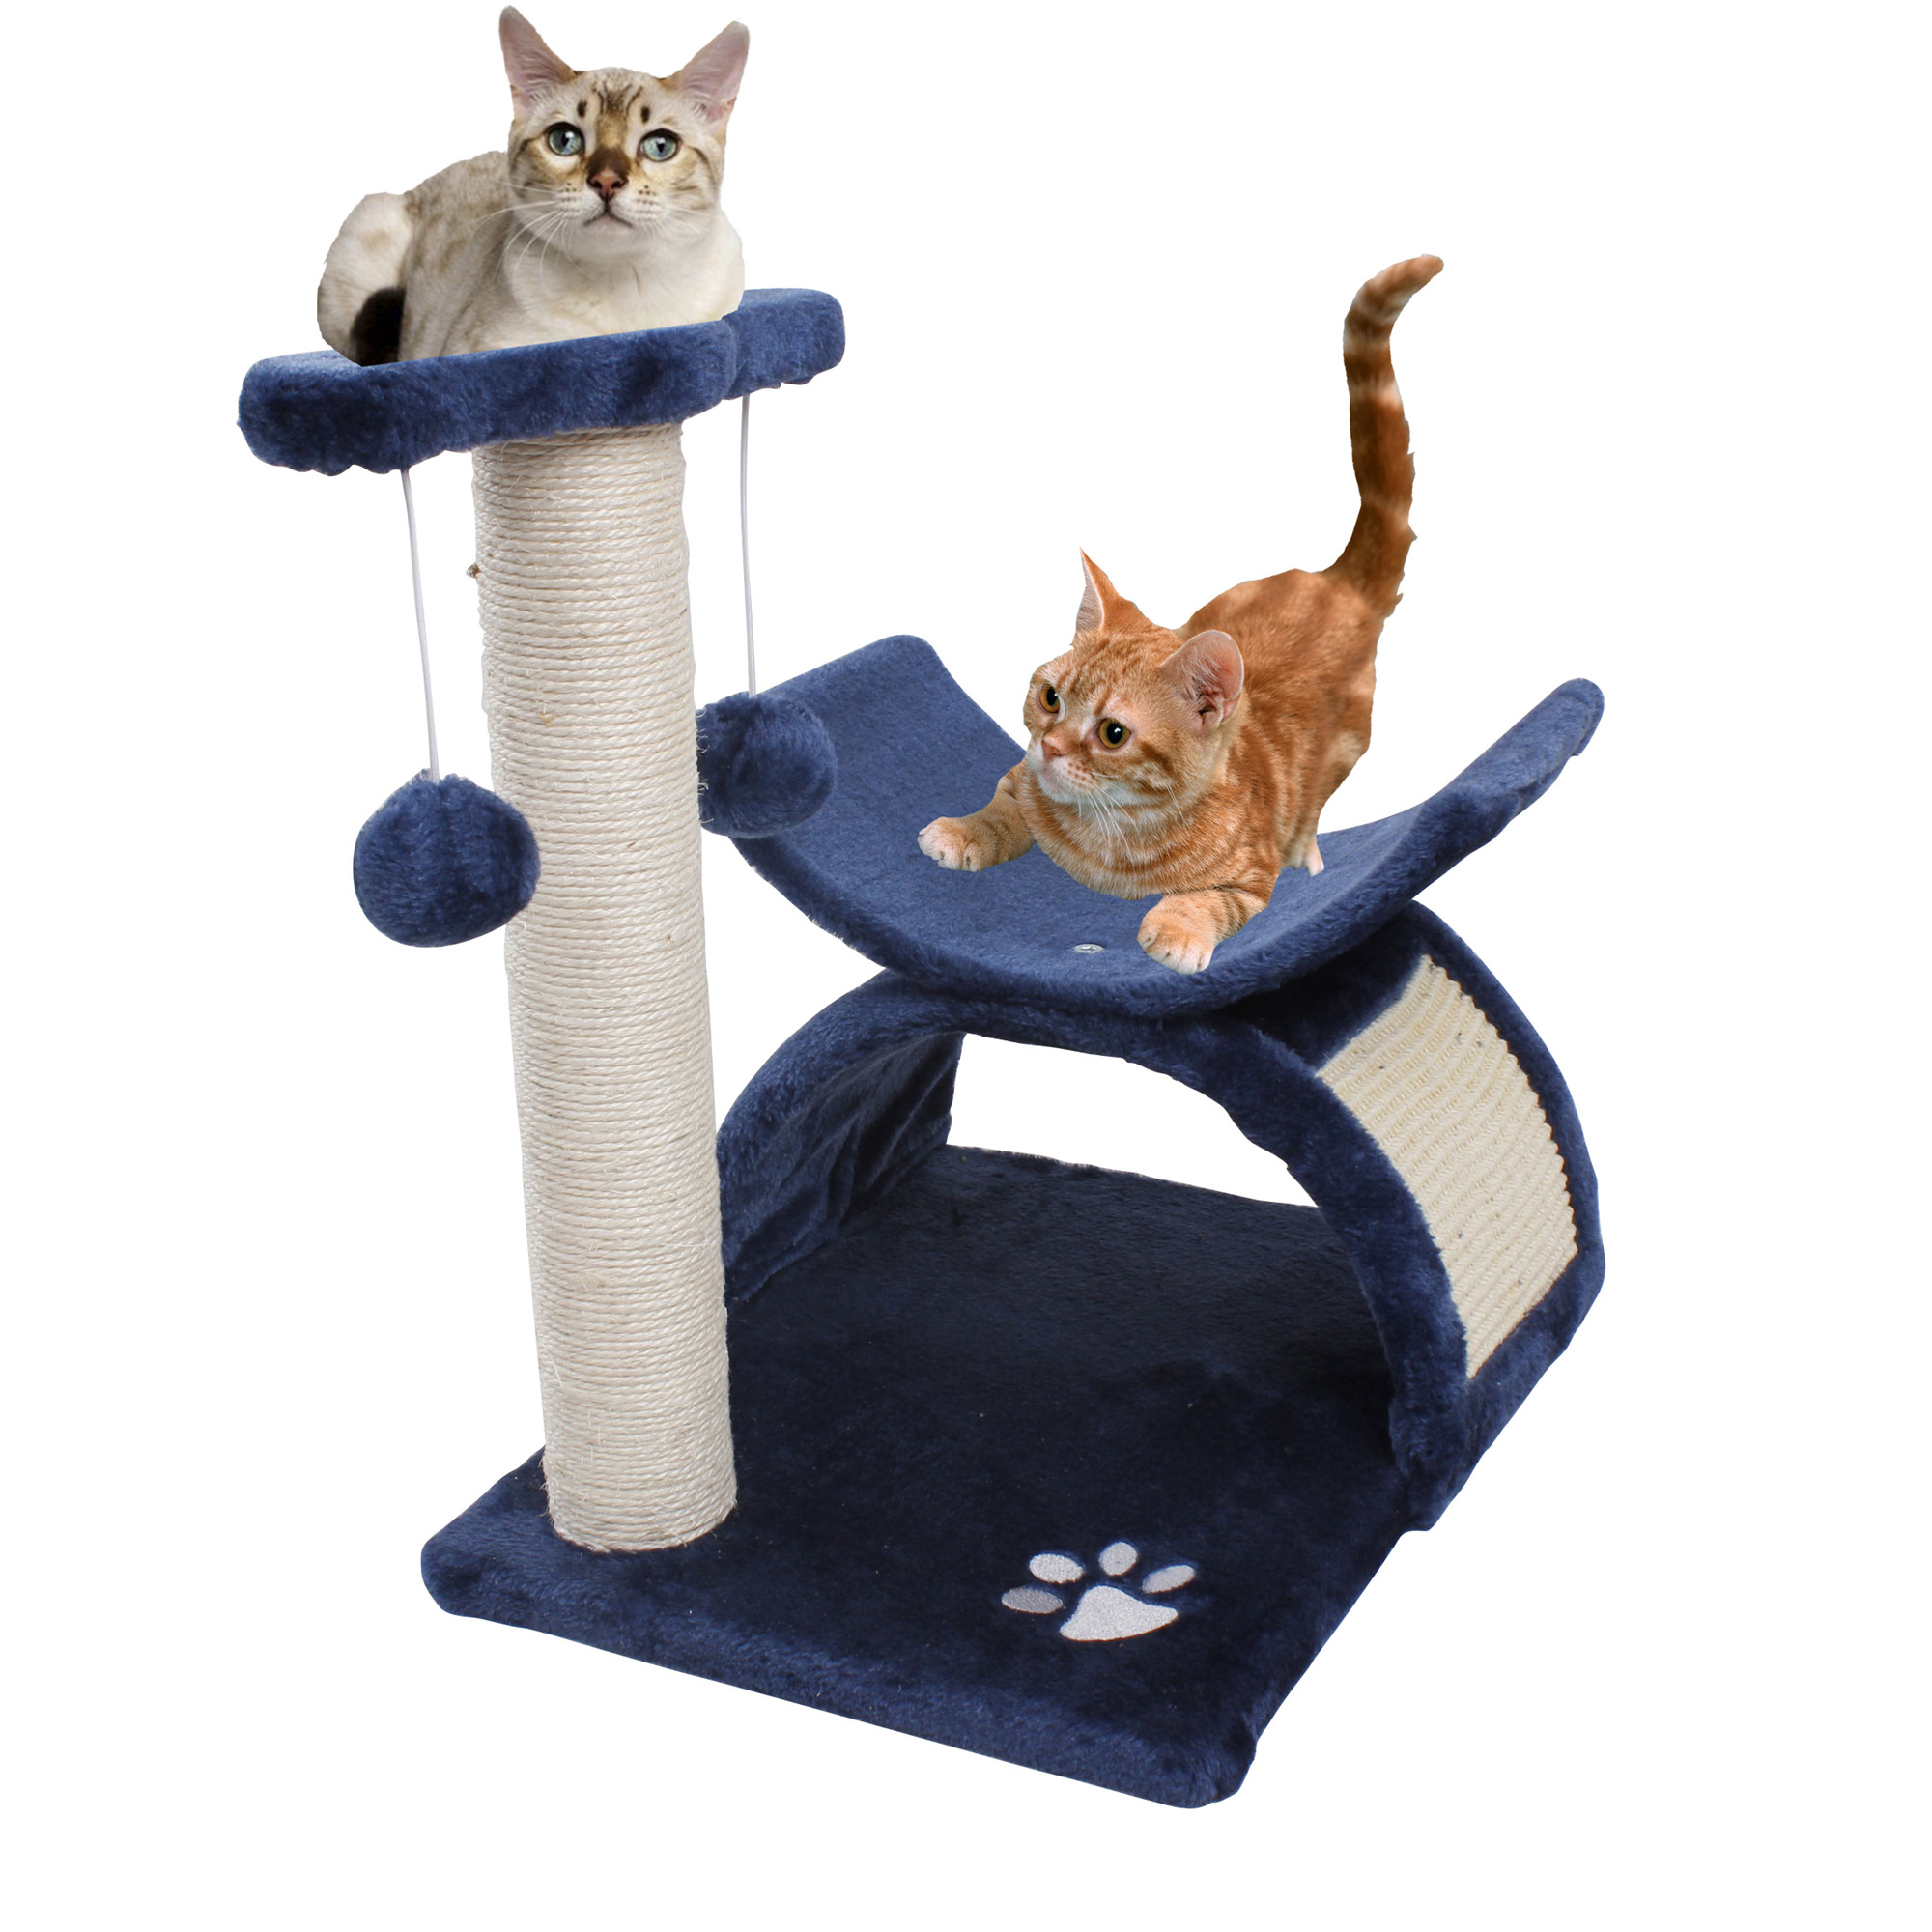 Andeworld Small Cat Tree Pet Condo Furniture Playhouse Navy Blue Total Height 17 7 Inch Com